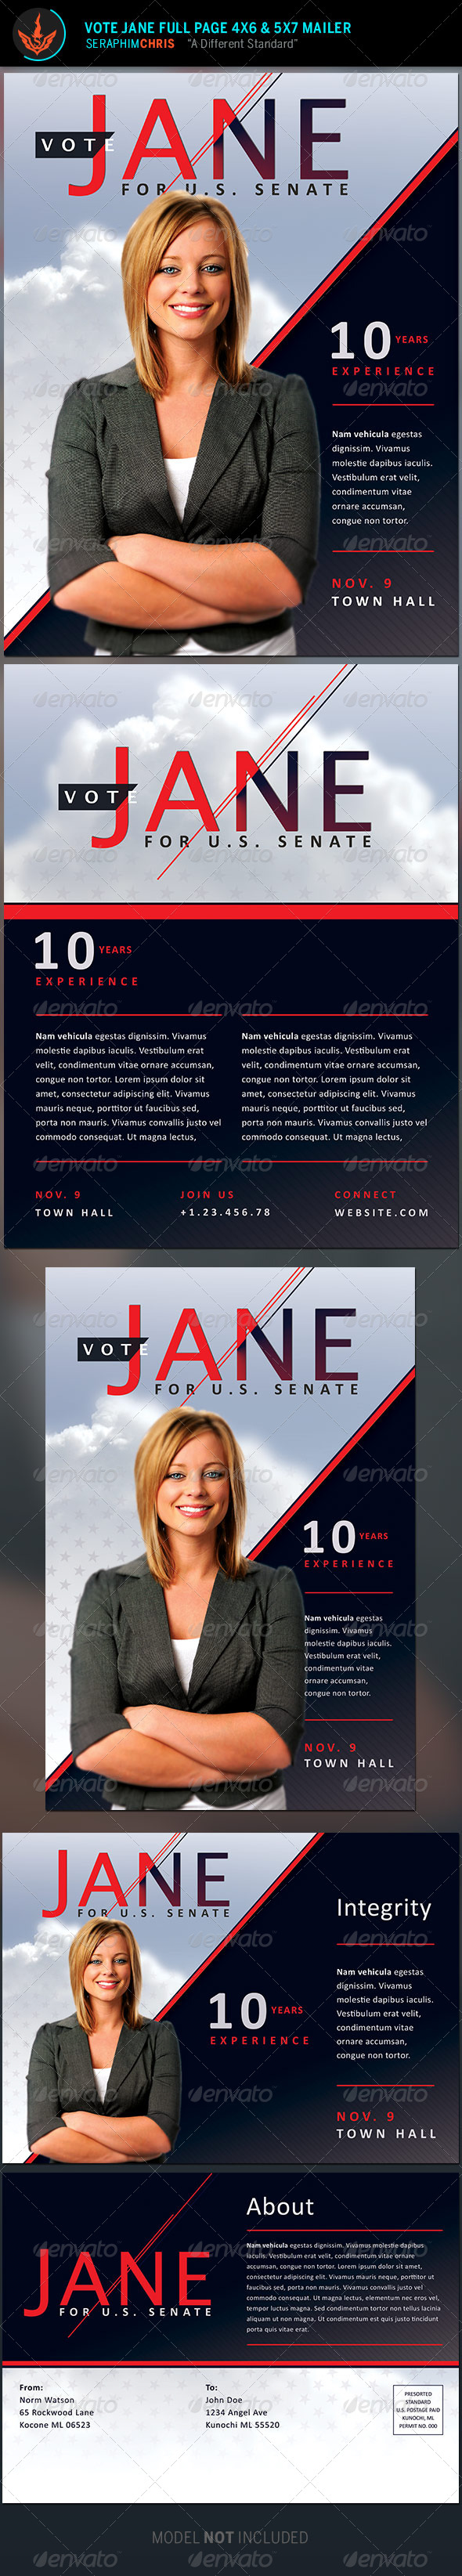 GraphicRiver Jane Political Flyer and Mailer Template 8645127